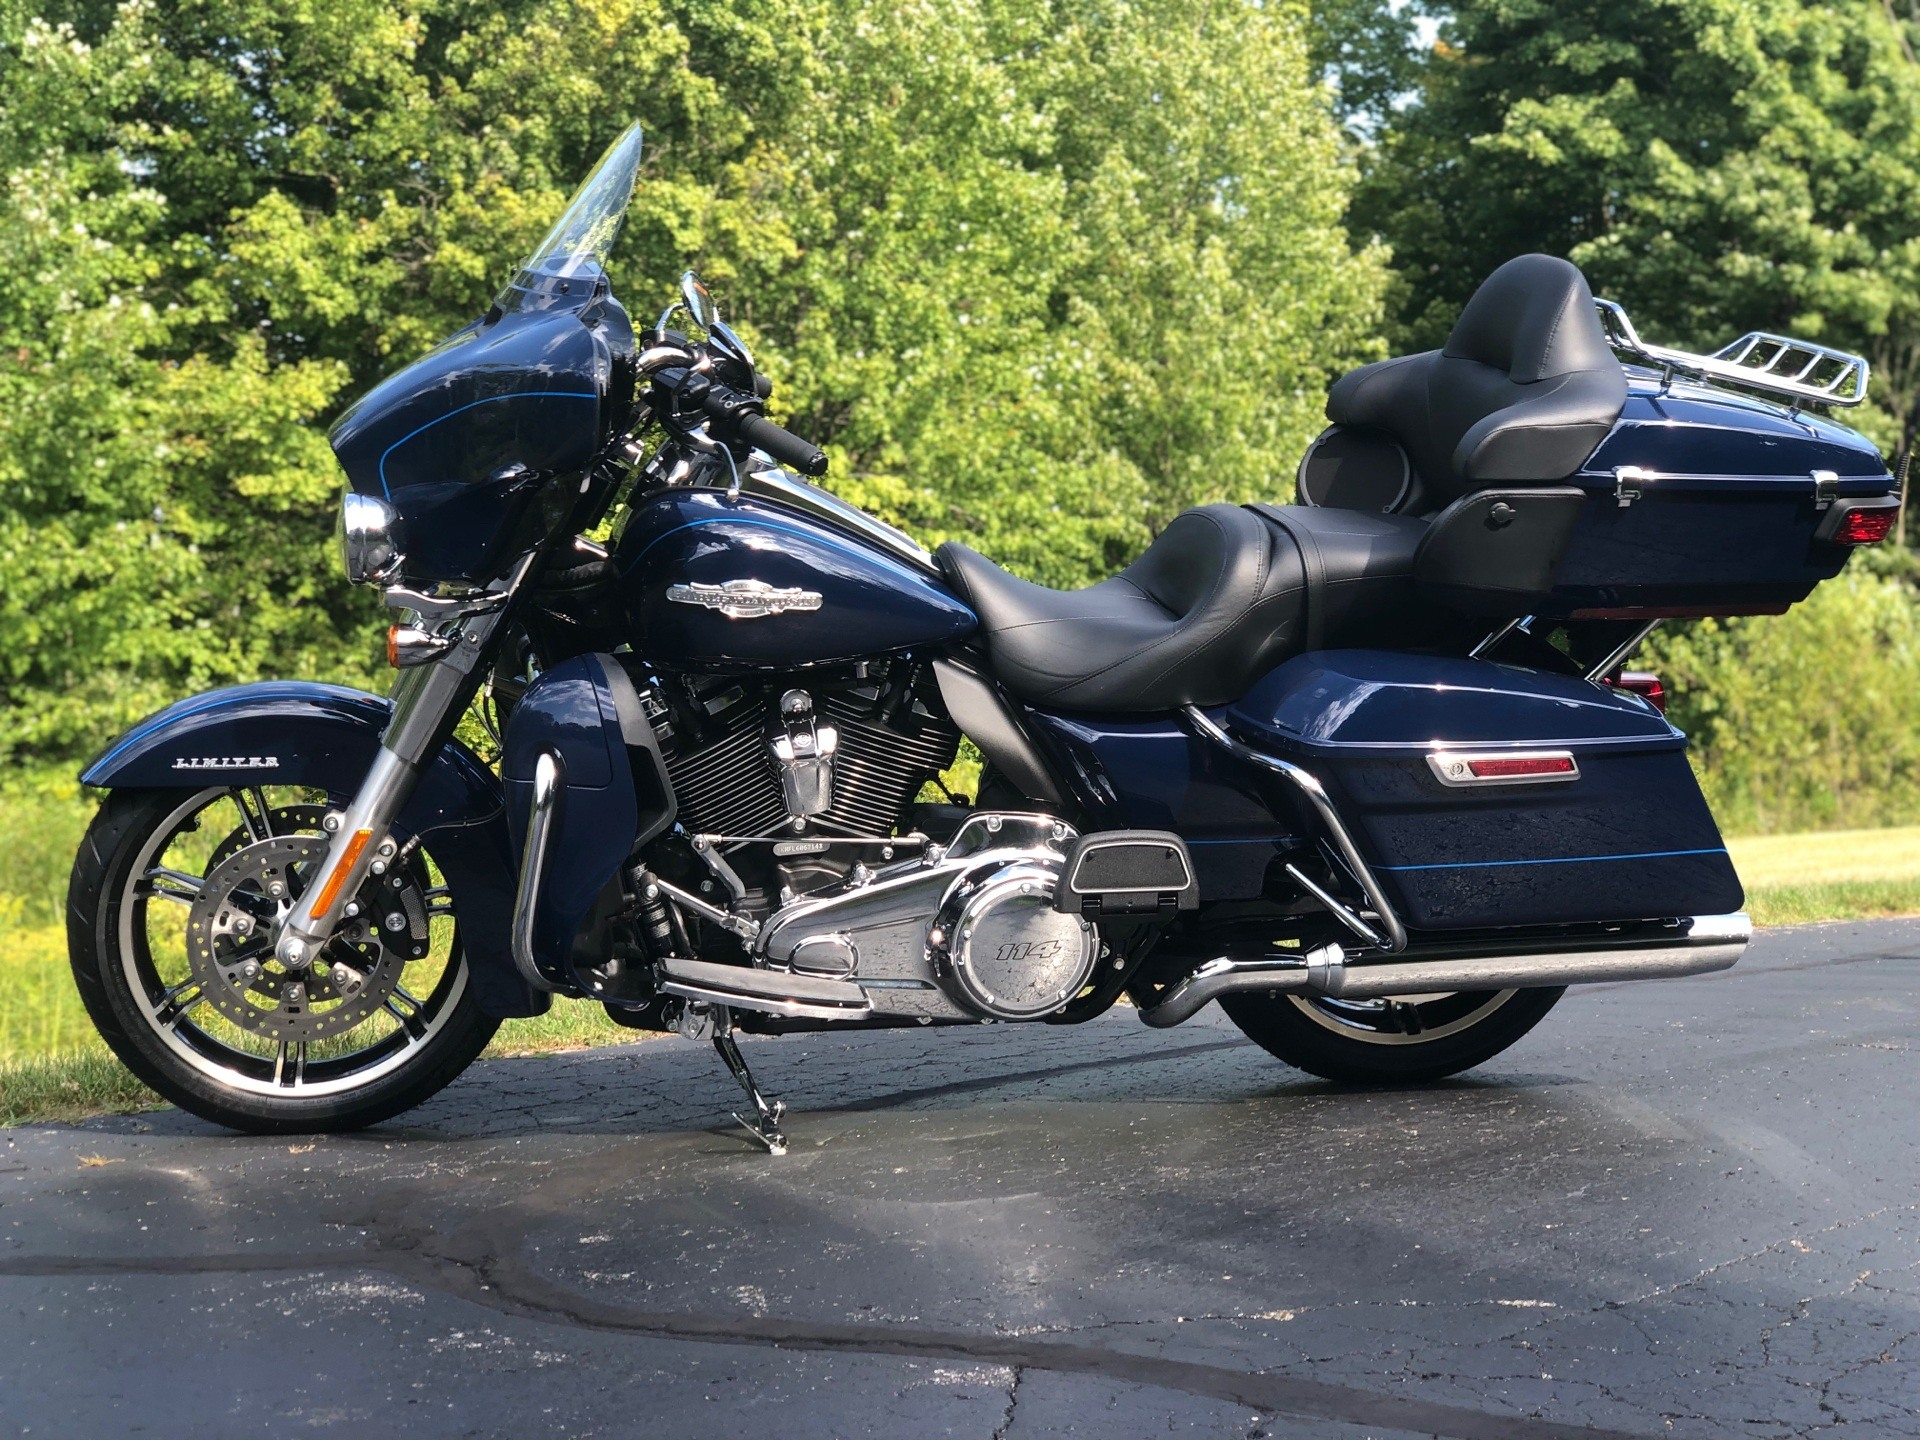 2020 Harley-Davidson Electra Glide Ultra Limited in Portage, Michigan - Photo 2